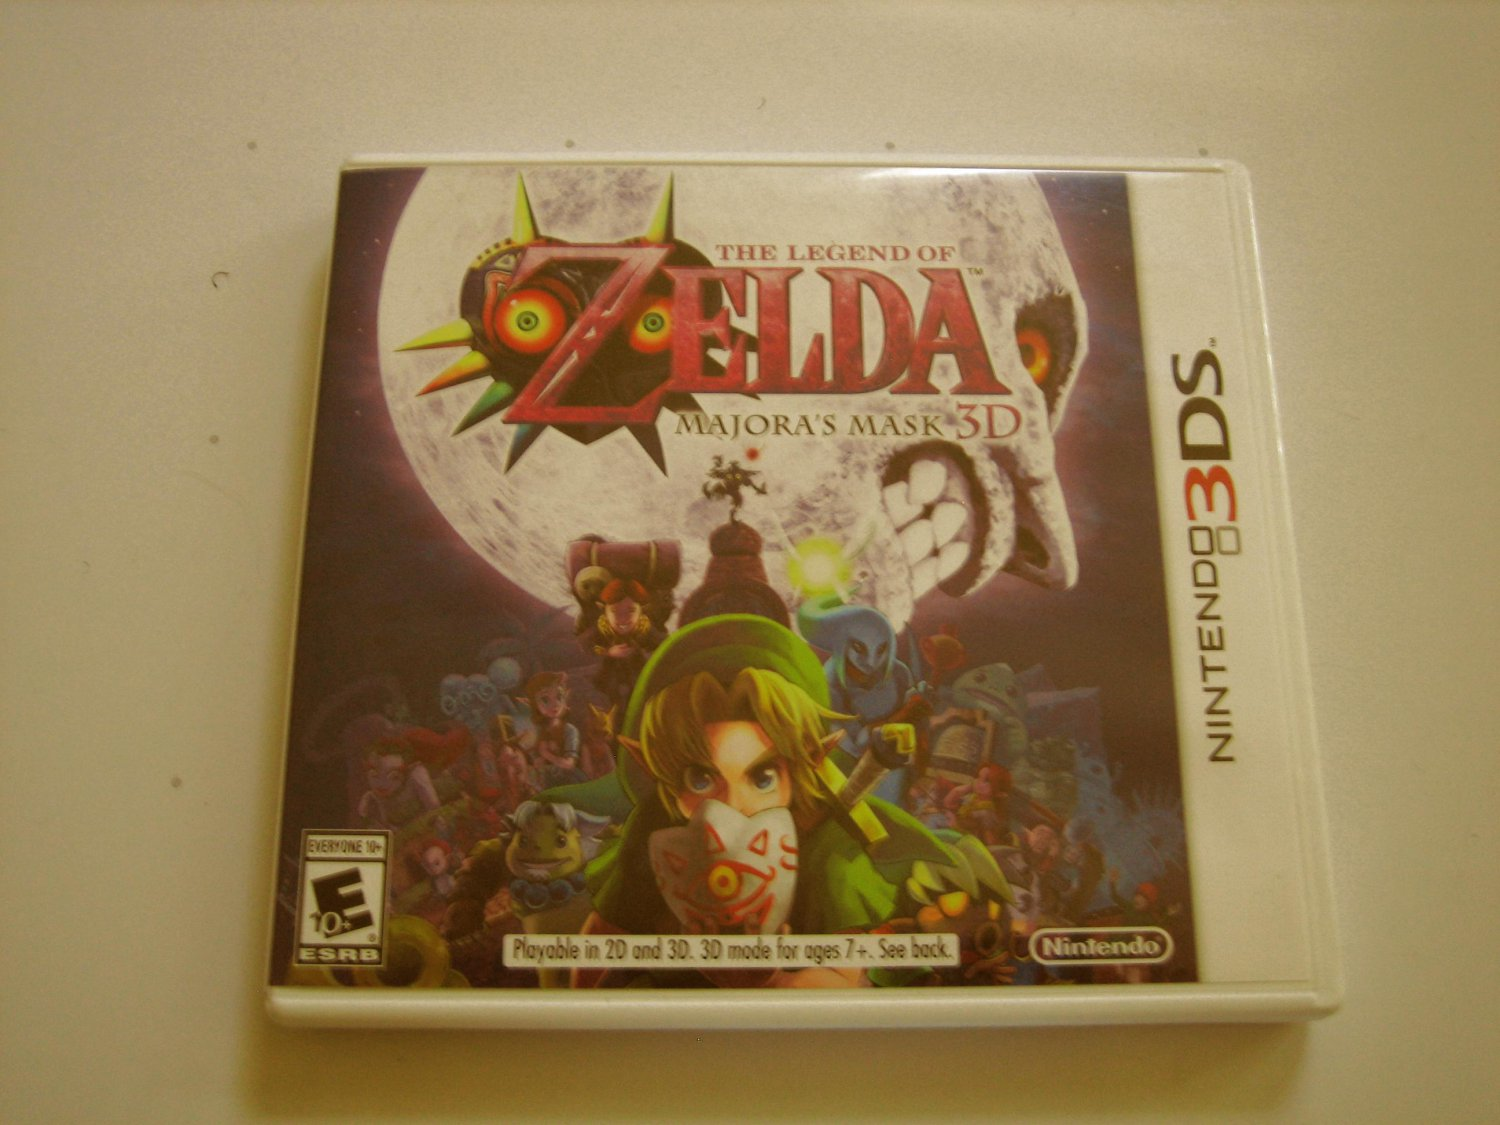 Zelda Majora's Mask 3d (New)